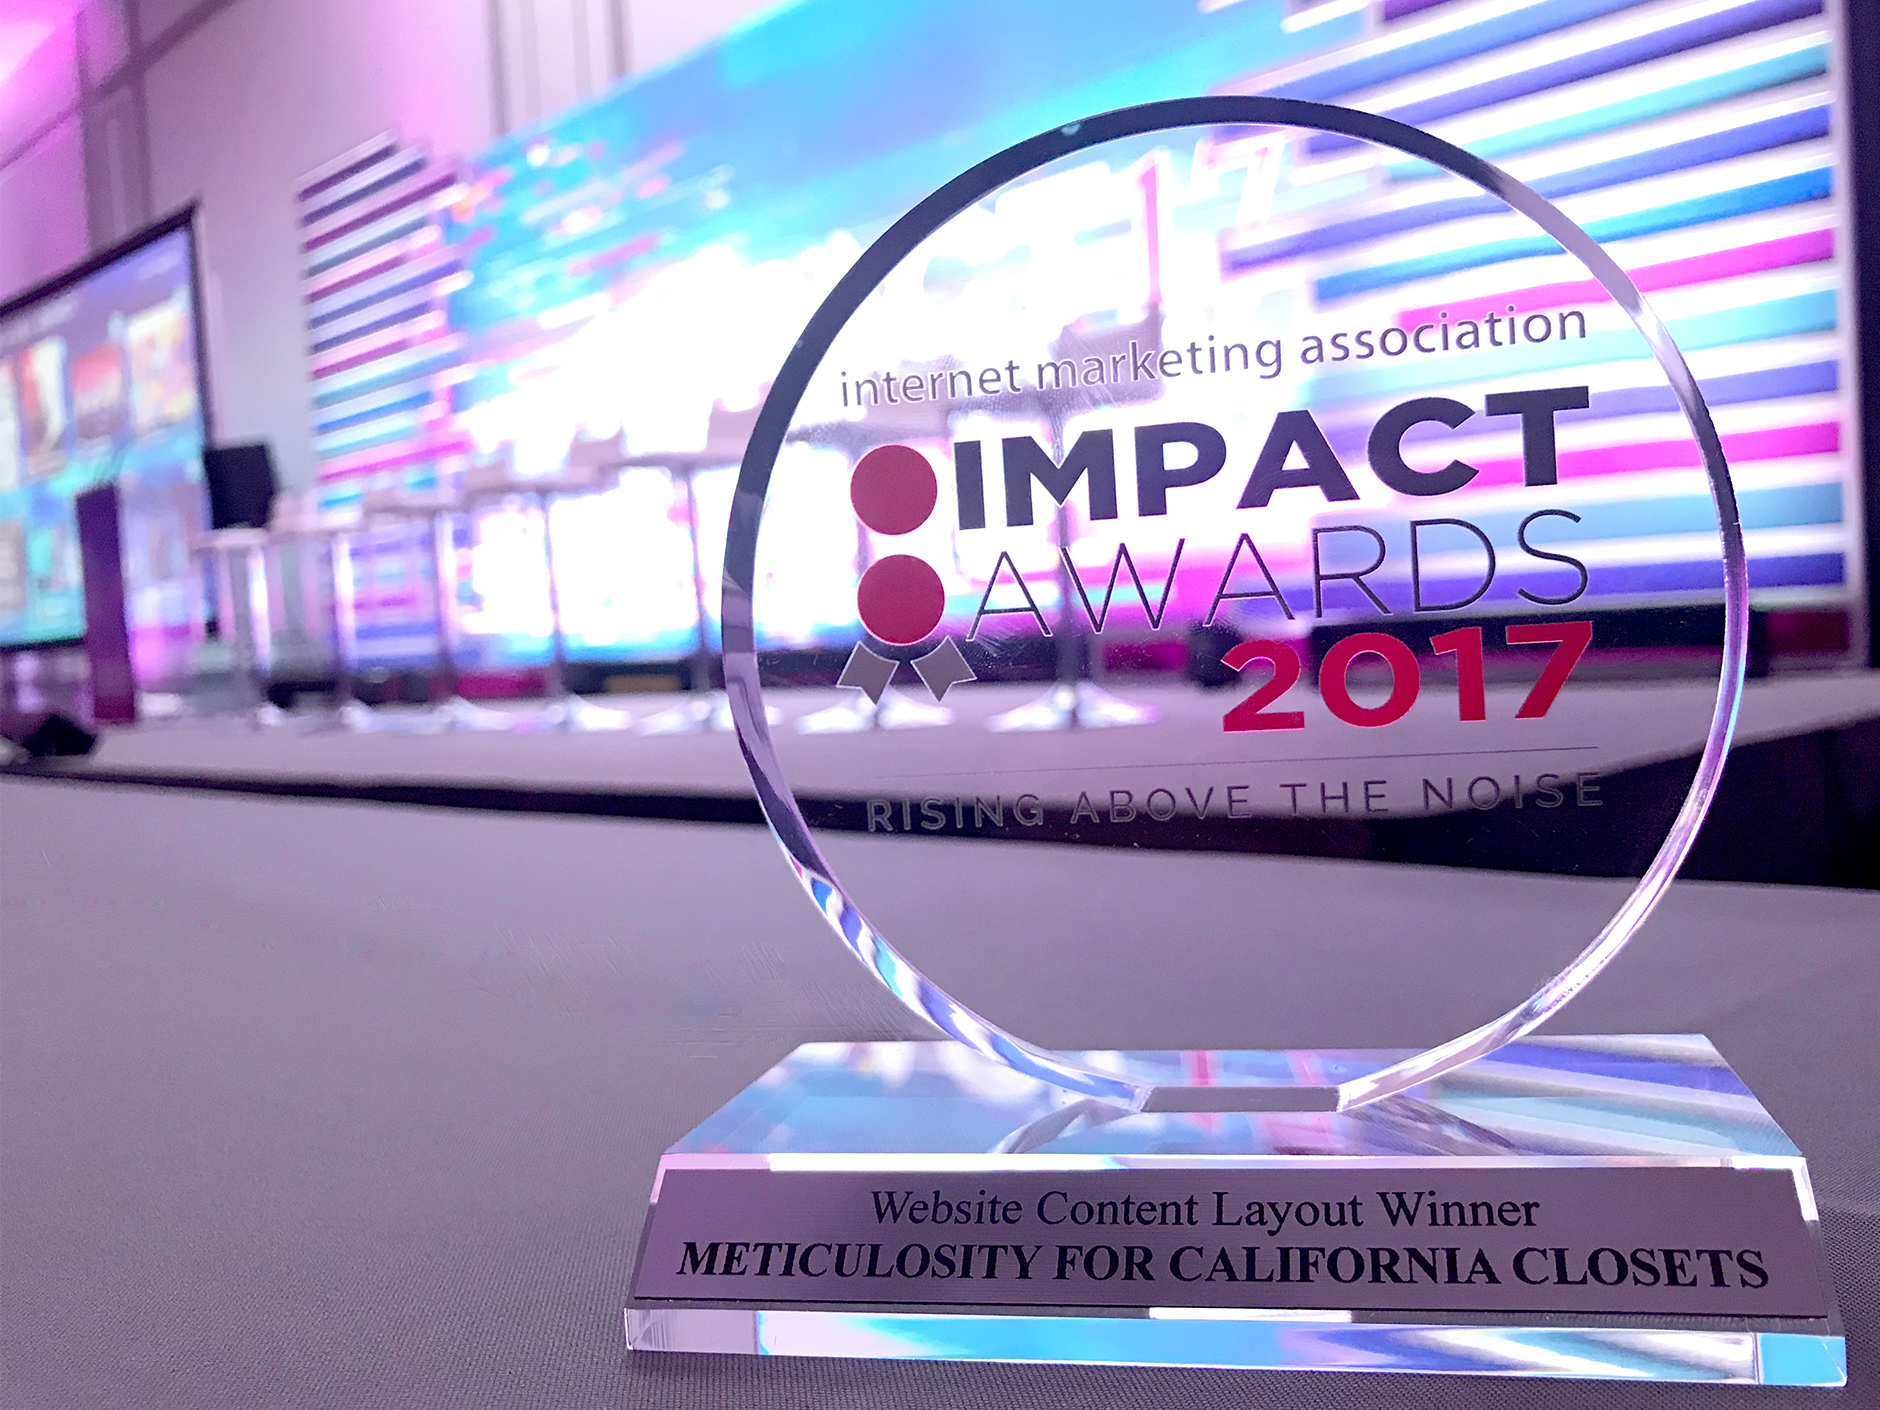 California closets las vegas - Meticulosity Receives Impact Award For Website Content Layout For California Closets